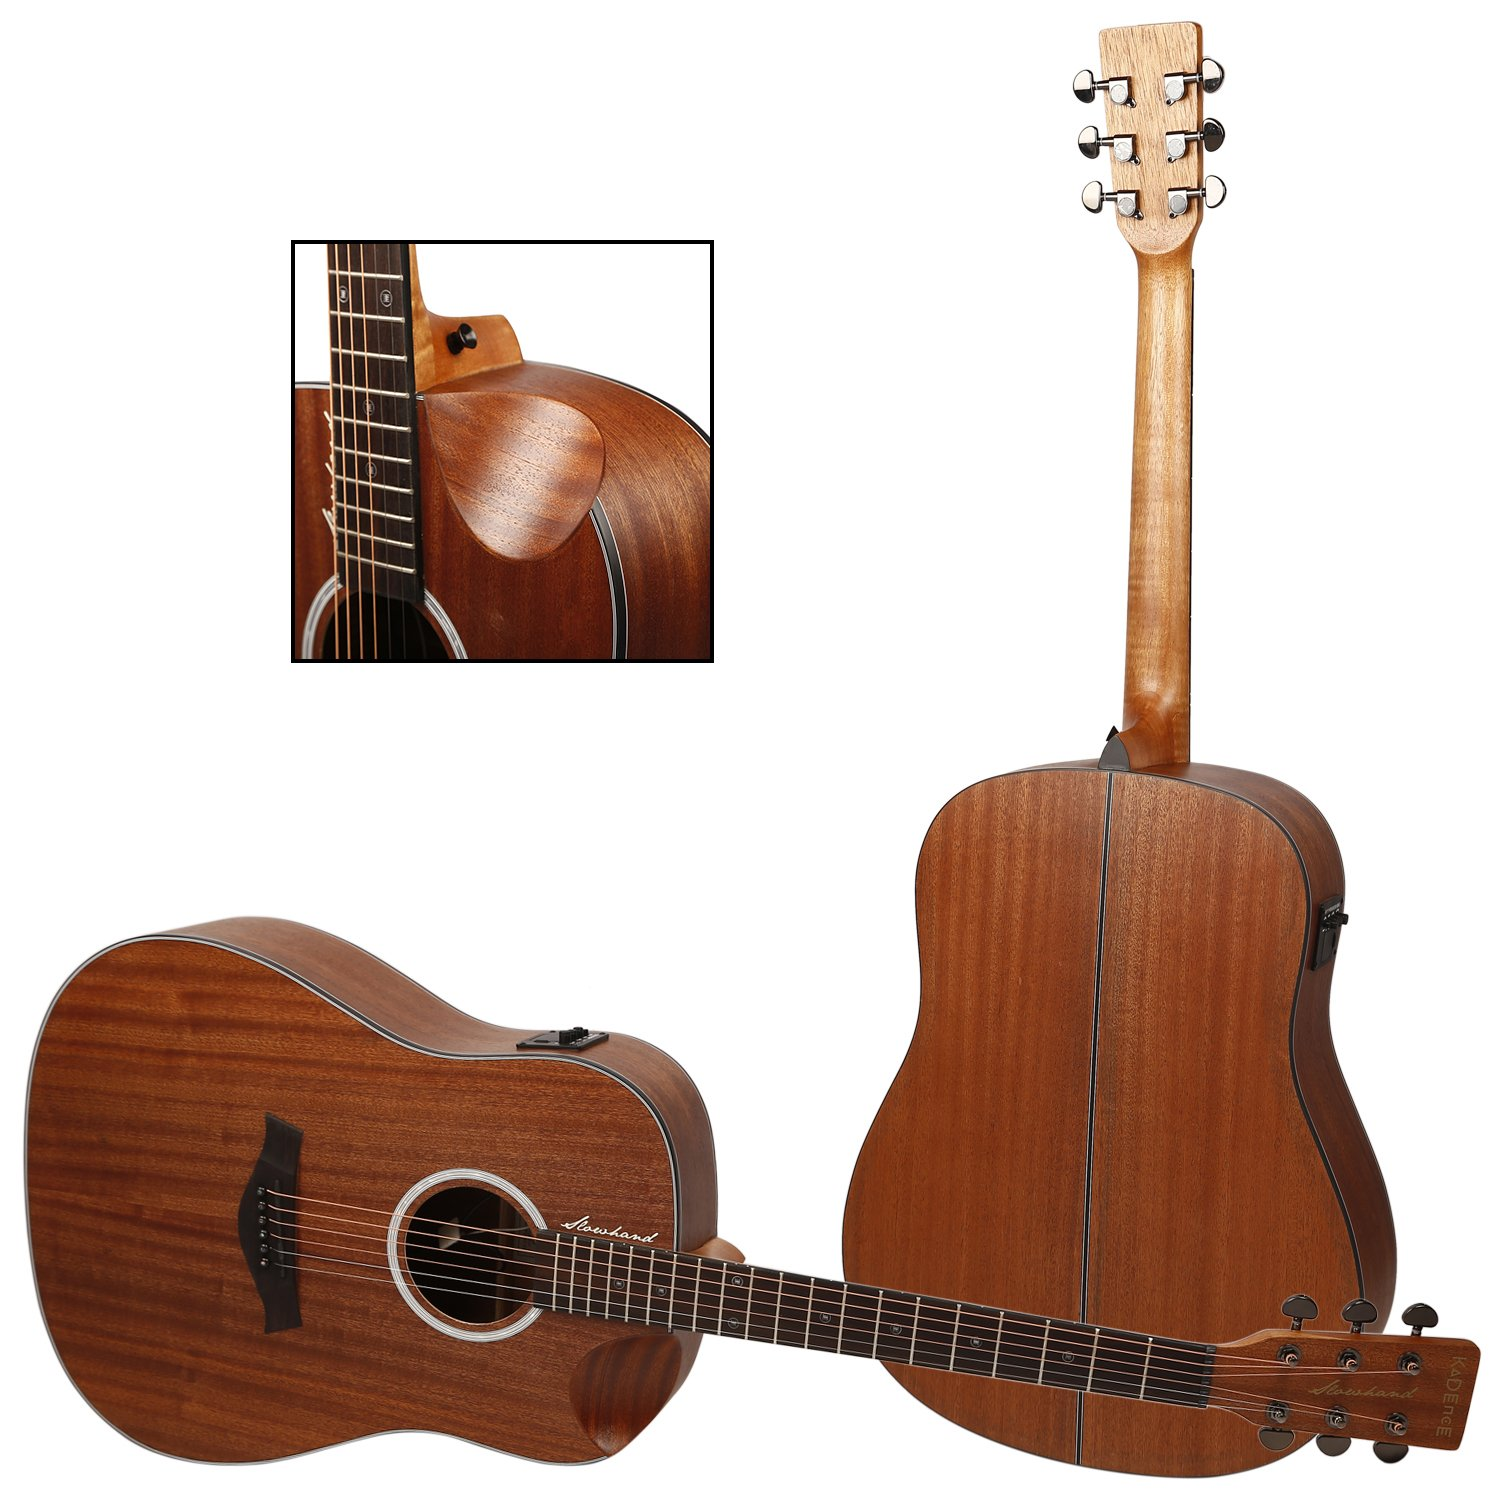 kadence slowhand series premium acoustic guitar mahagony top